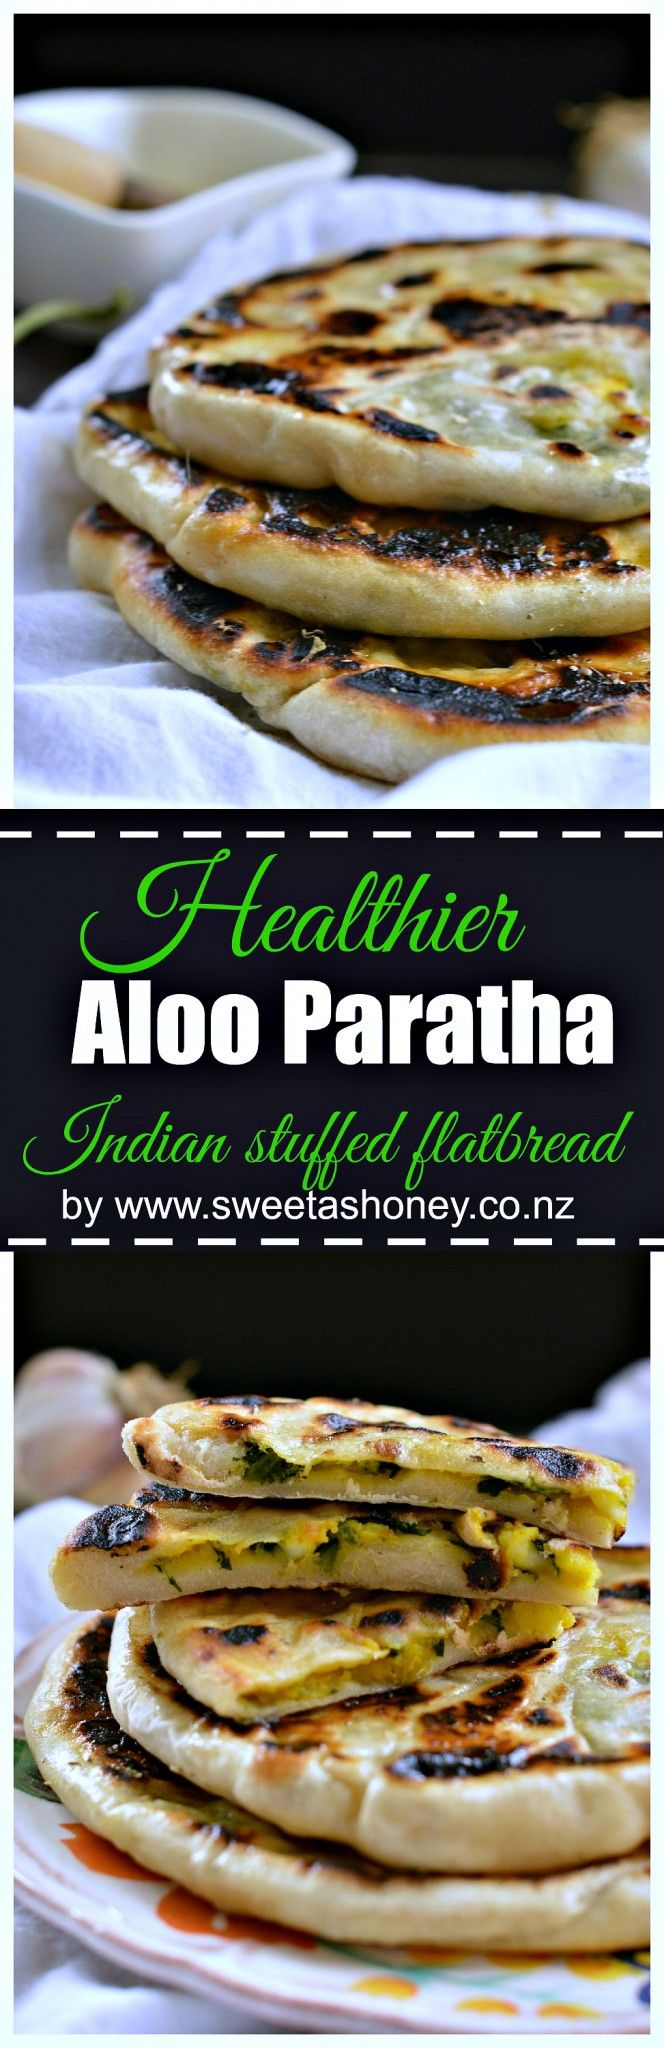 Aloo Paratha (Indian Stuffed FlatBread made healthier using spelt flour, spinach, sweet potatoes and coconut oil). by sweetashoney.co